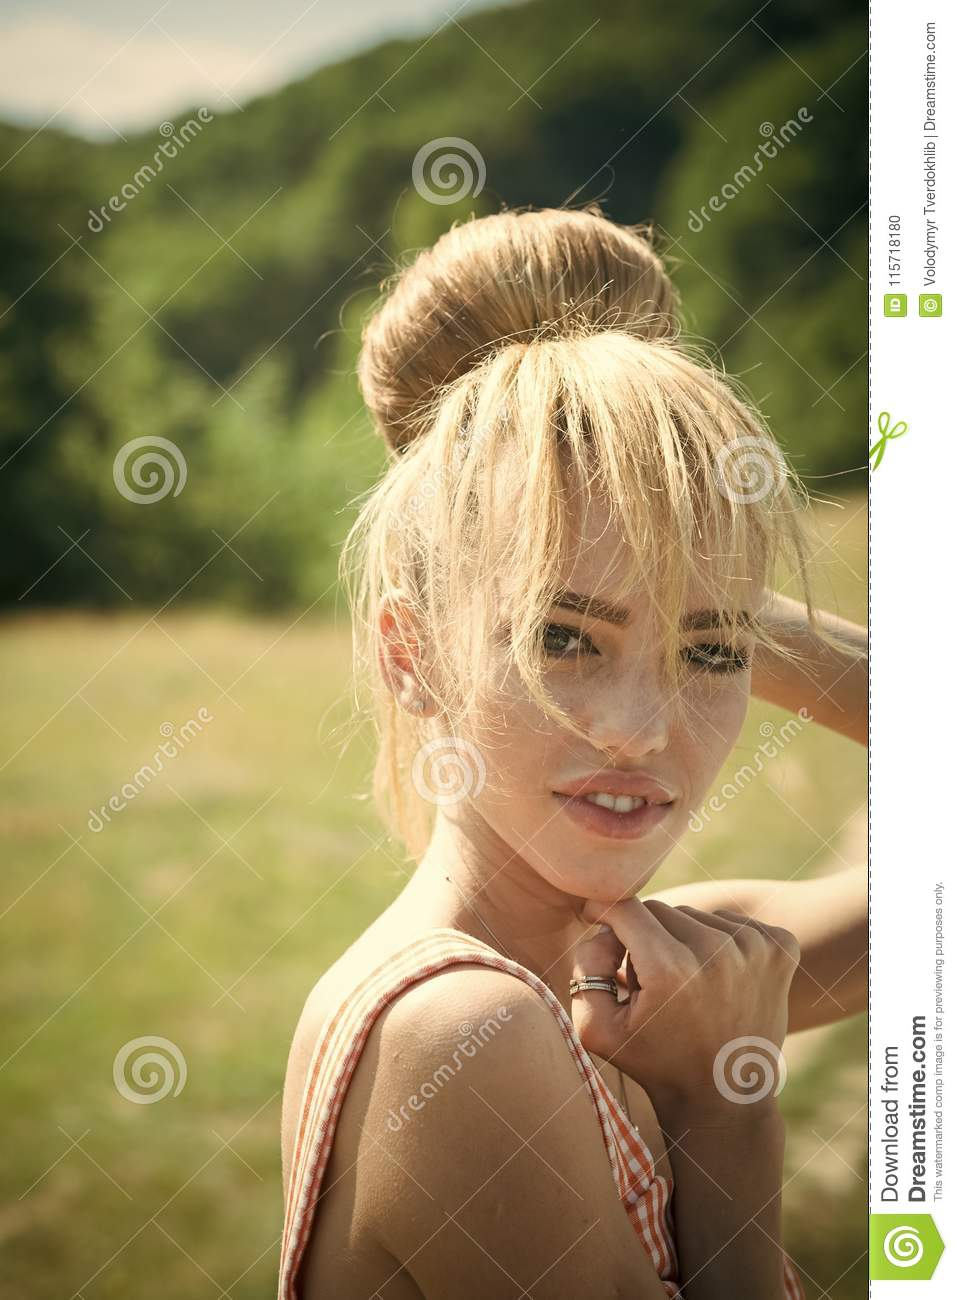 Sensual woman with makeup on cute face. Fashion cosmetics for skincare. Retro woman with stylish blond hair outdoor